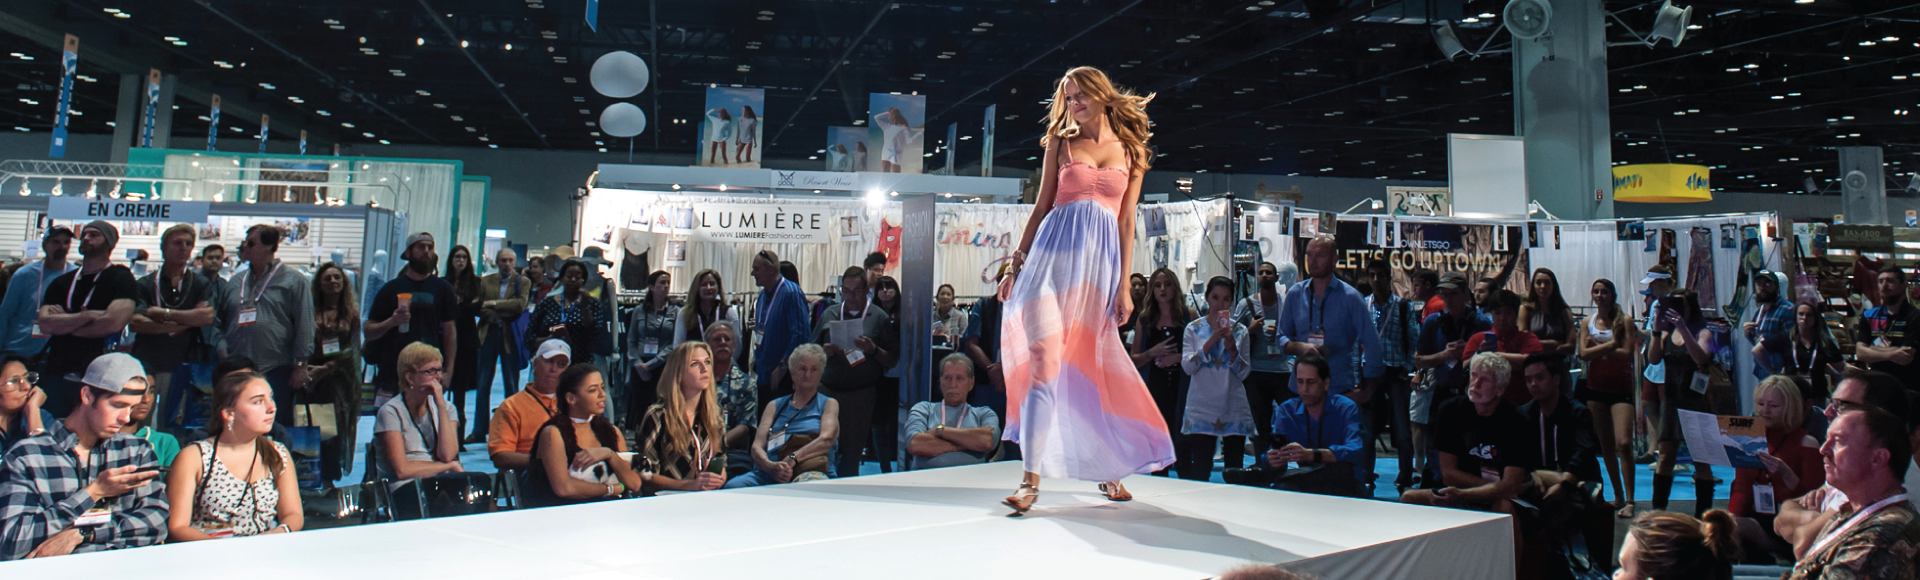 Expo 2015 Stand Enel : Surf expo watersports & beach lifestyle show in orlando